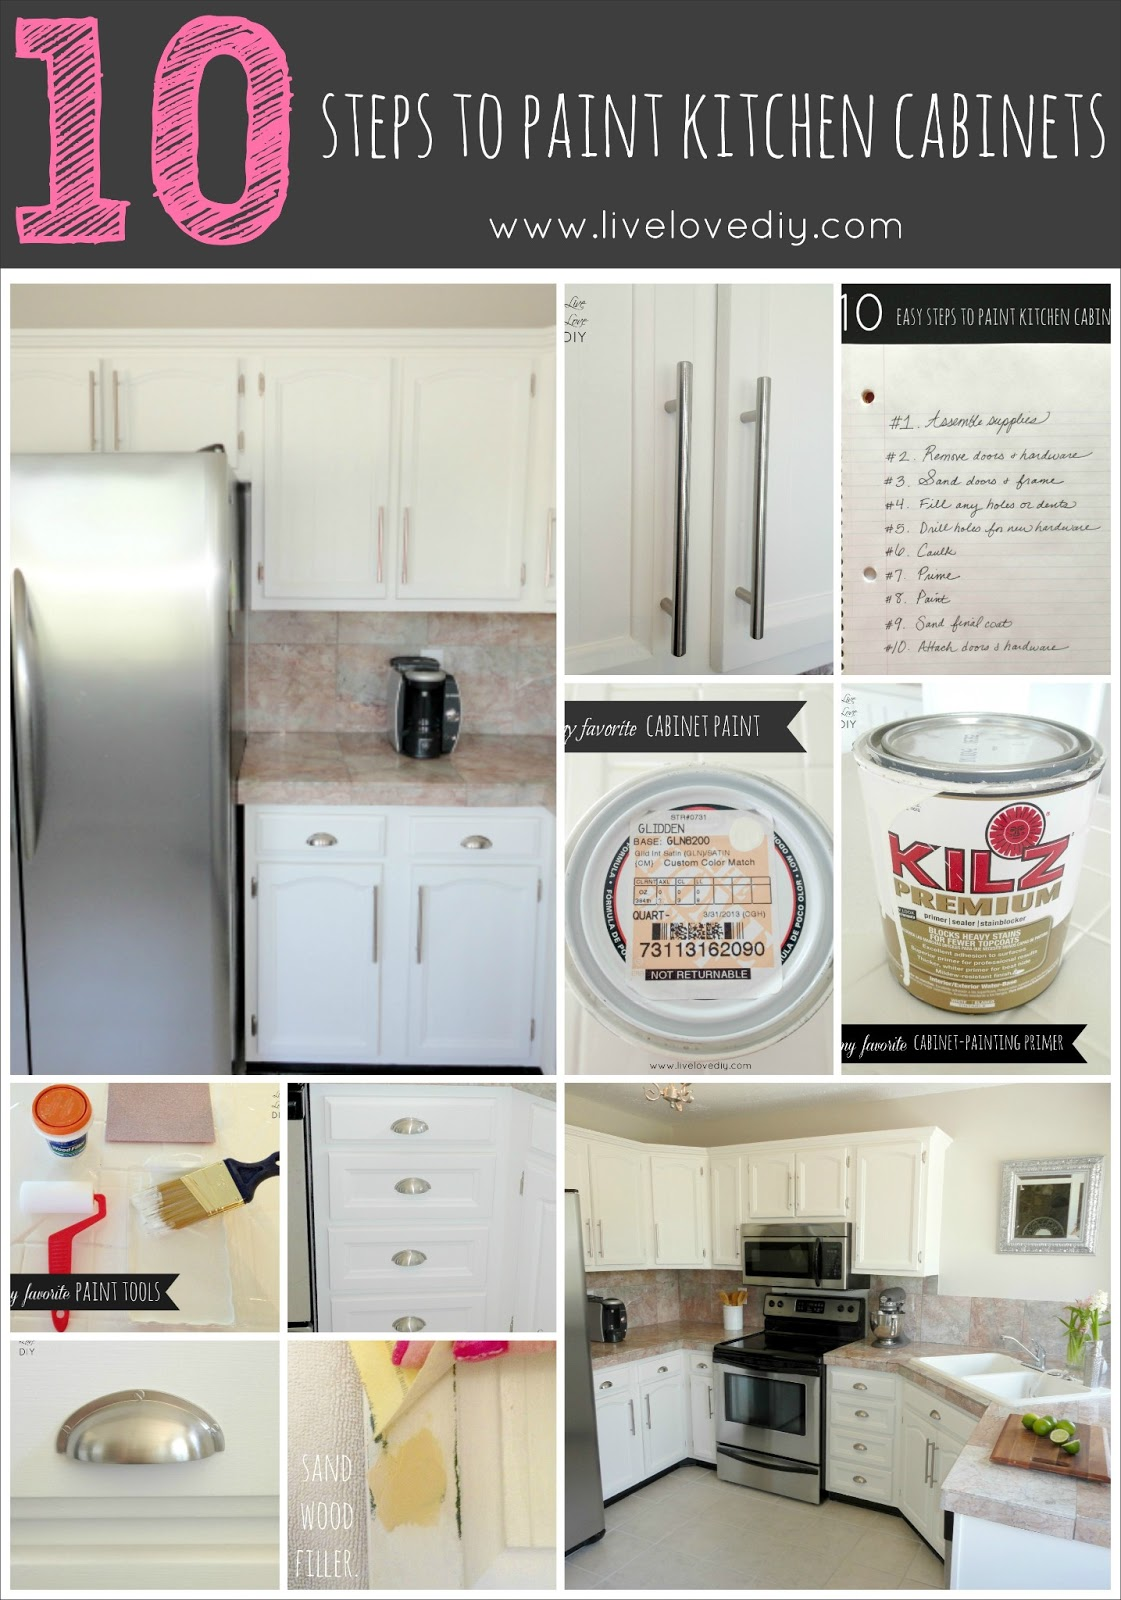 10 easy steps to paint kitchen cabinets paint kitchen cabinets white How To Paint Kitchen Cabinets in 10 Easy Steps